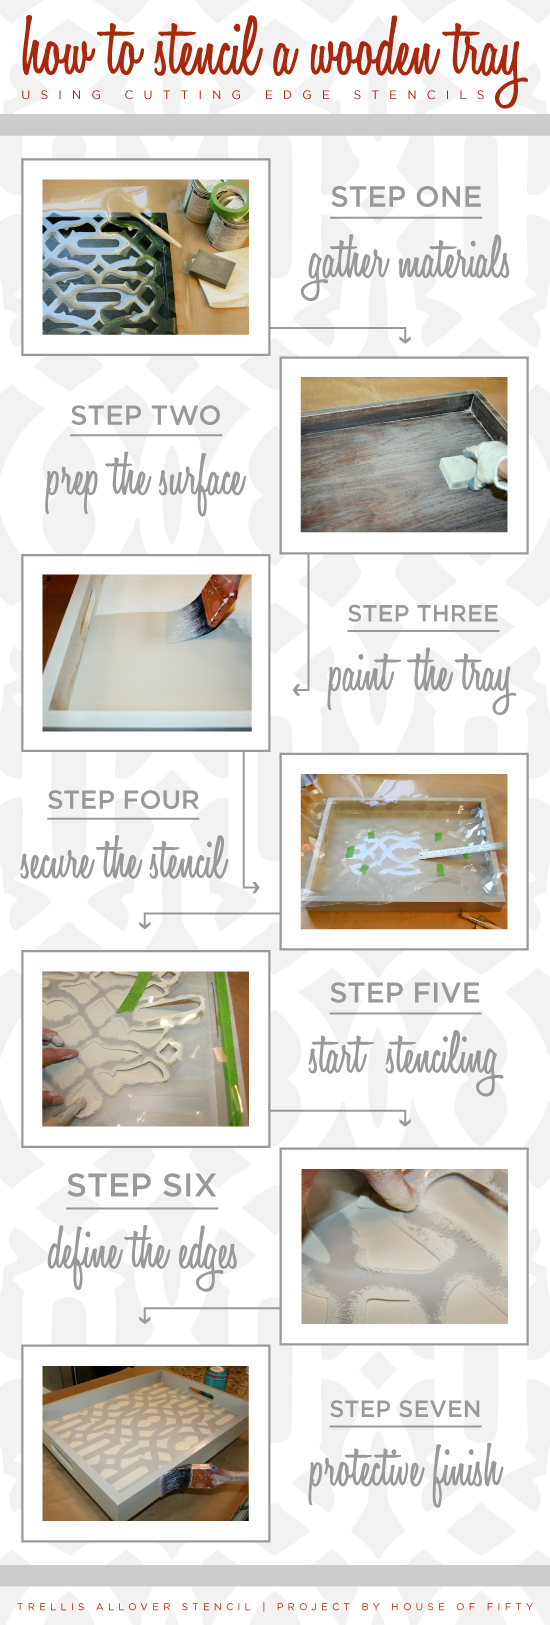 Simples steps to learning how to stencil a wooden tray using stencils from Cutting Edge Stencils! http://www.cuttingedgestencils.com/allover-stencil.html